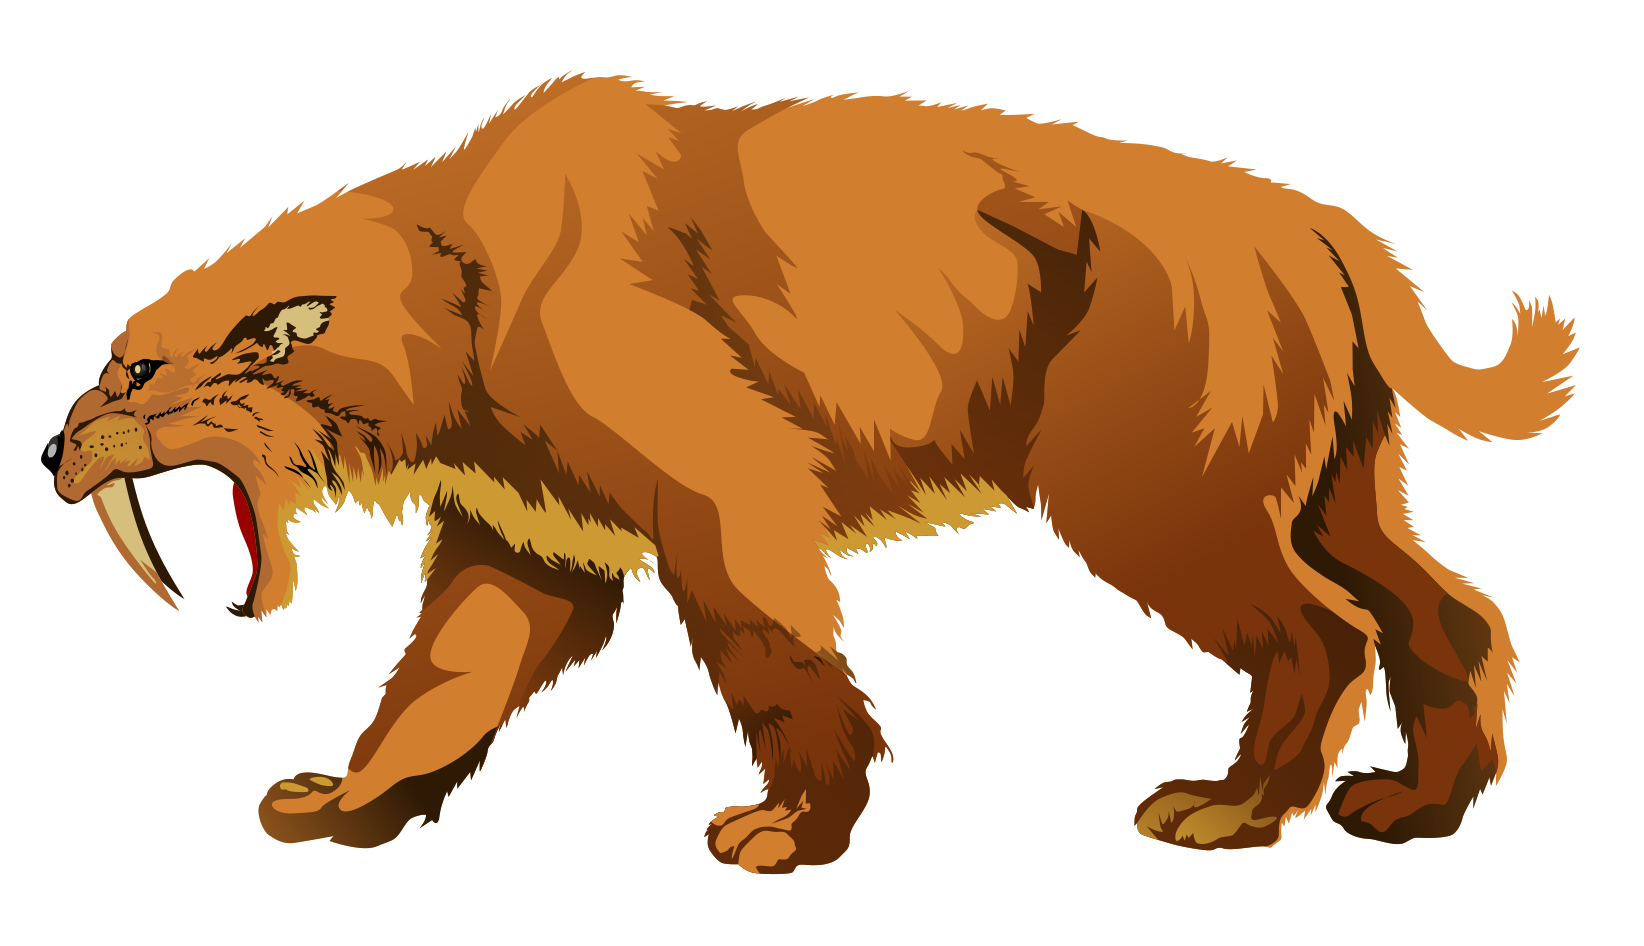 Tooth clipart file. Image sabertooth tiger png